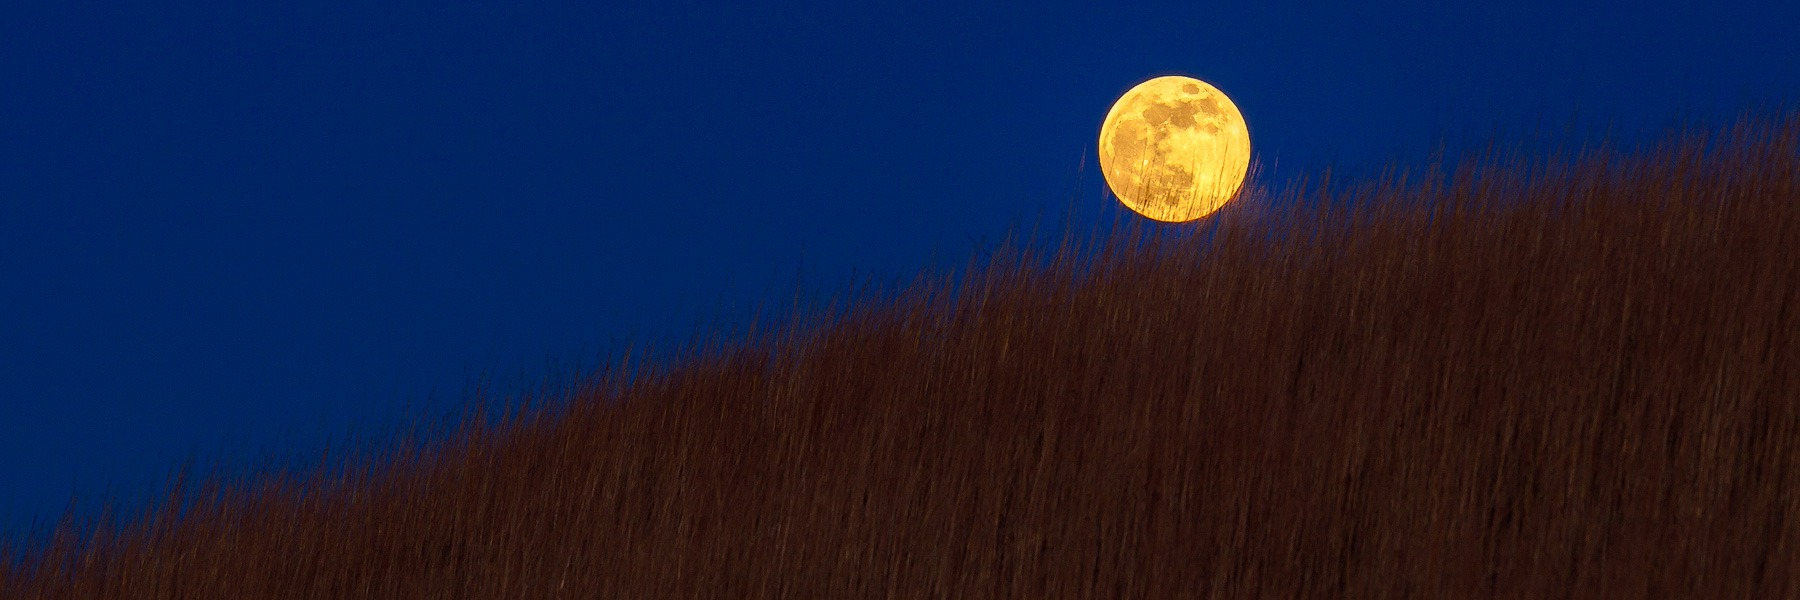 Howling Moon Over Tallgrass Prairie - FHWI_6778